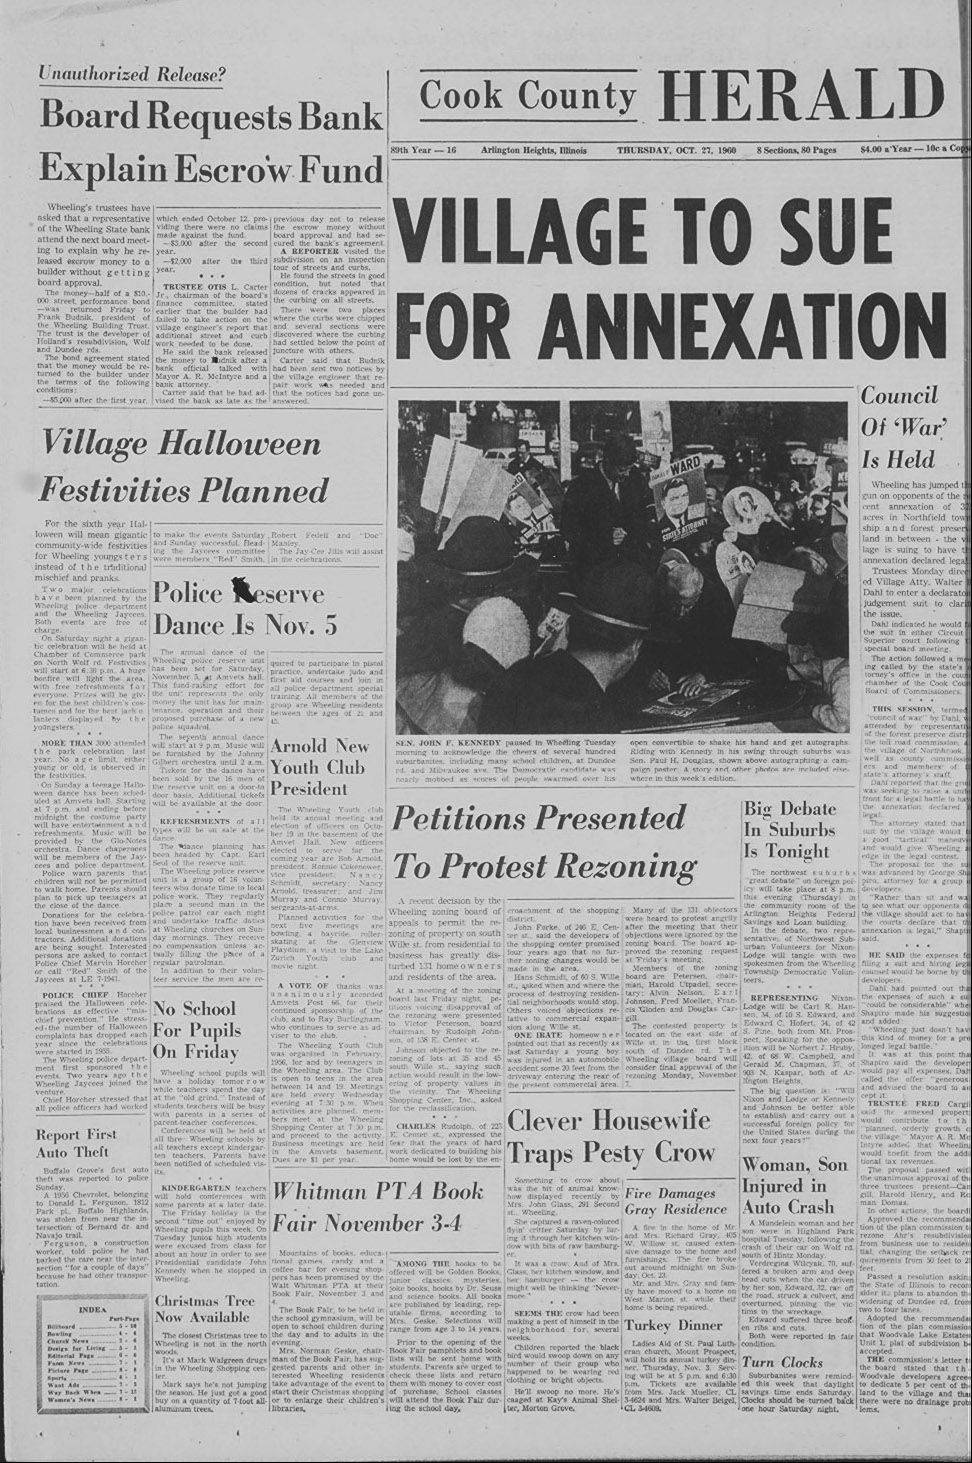 The Cook County Herald showcased Sen. John F. Kennedy's visit to the suburbs.